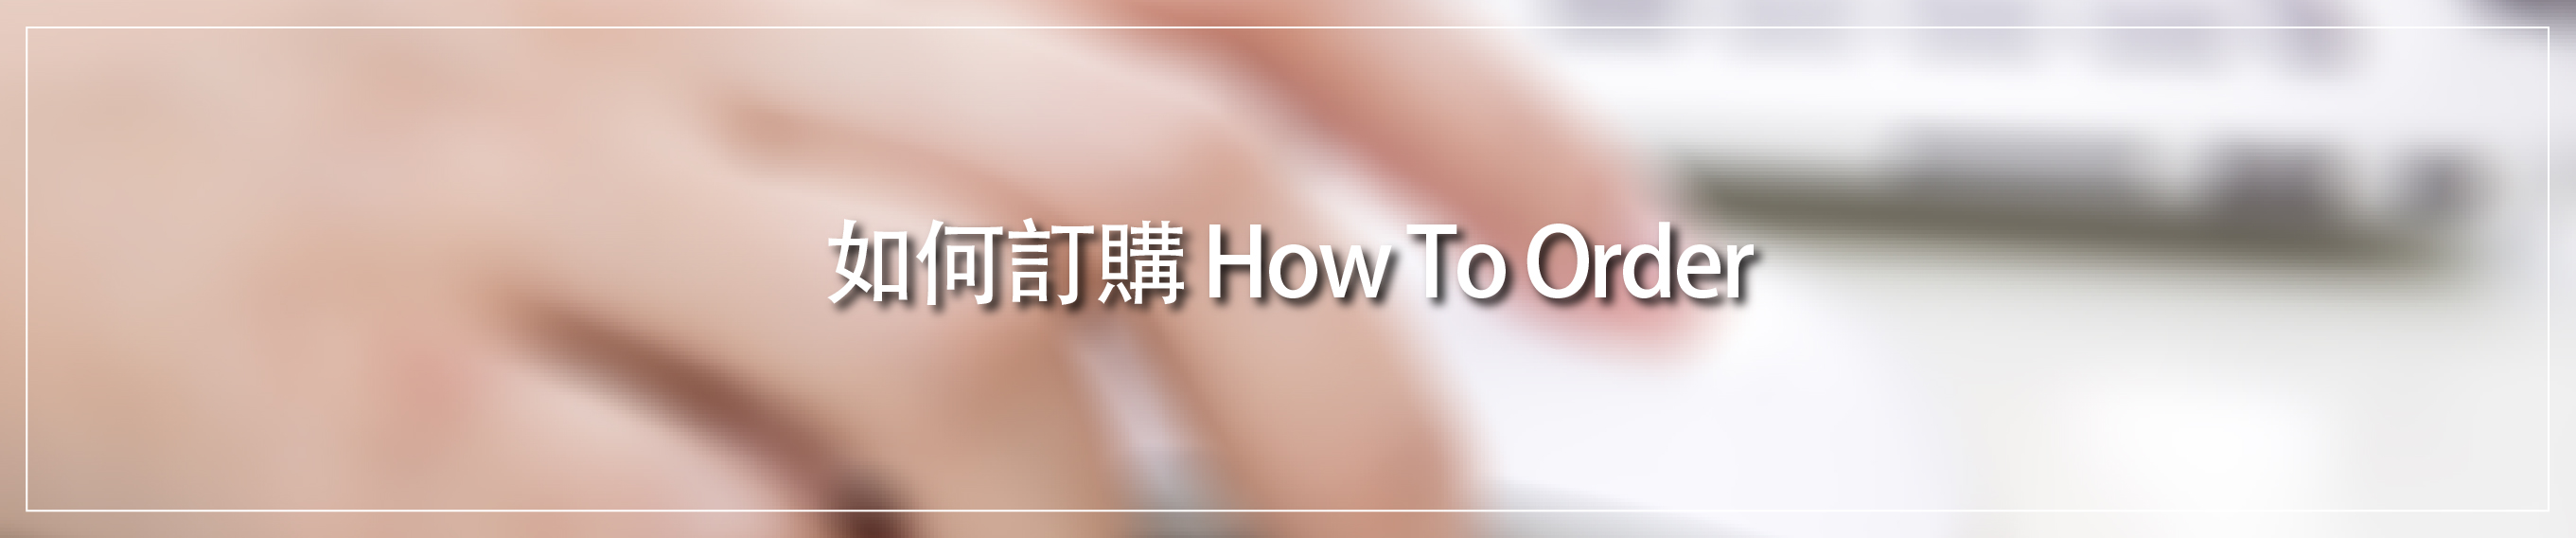 -how-to-order-01-01.jpg